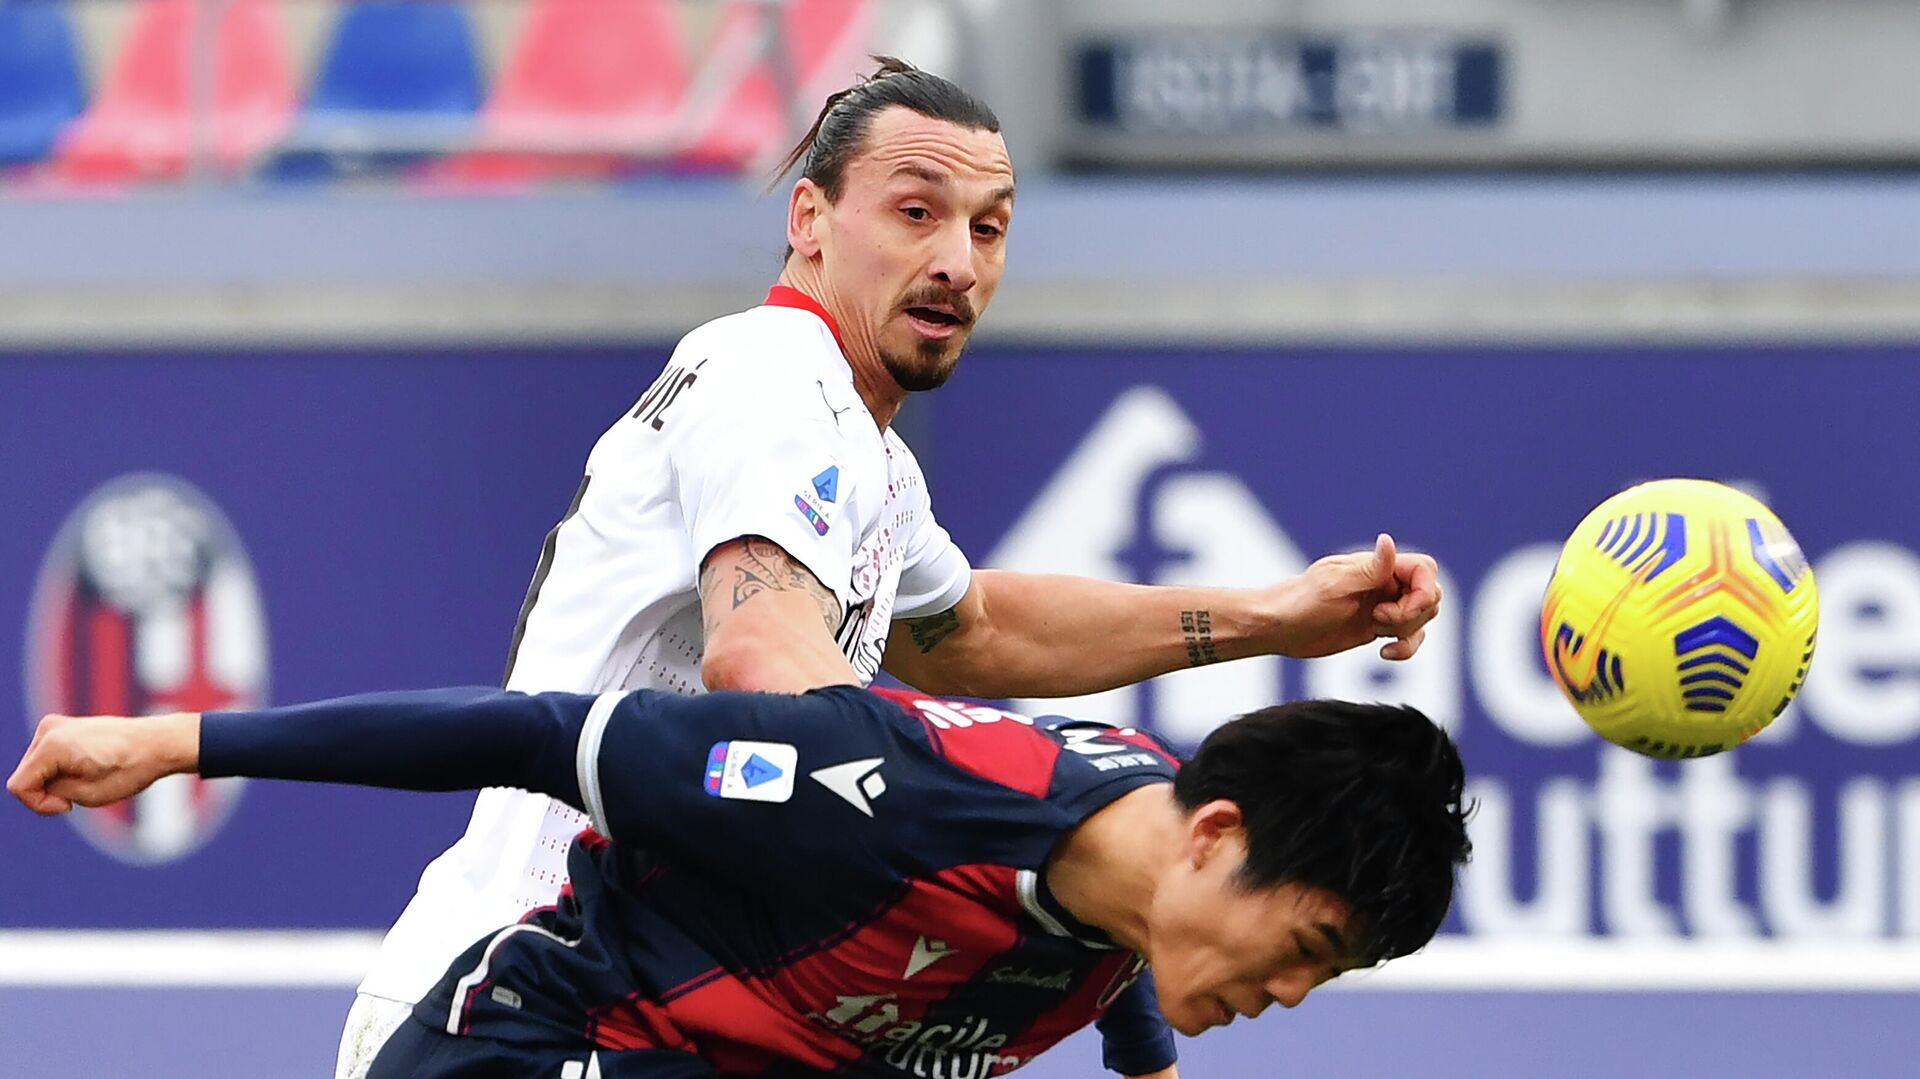 Bologna's Japanese defender Takehiro Tomiyasu (R) heads the ball past AC Milan's Swedish forward Zlatan Ibrahimovic during the Serie A football match between Bologna and AC Milan on January 30, 2021 at the Dall'Ara stadium in Bologna. (Photo by Alberto PIZZOLI / AFP) - РИА Новости, 1920, 30.01.2021